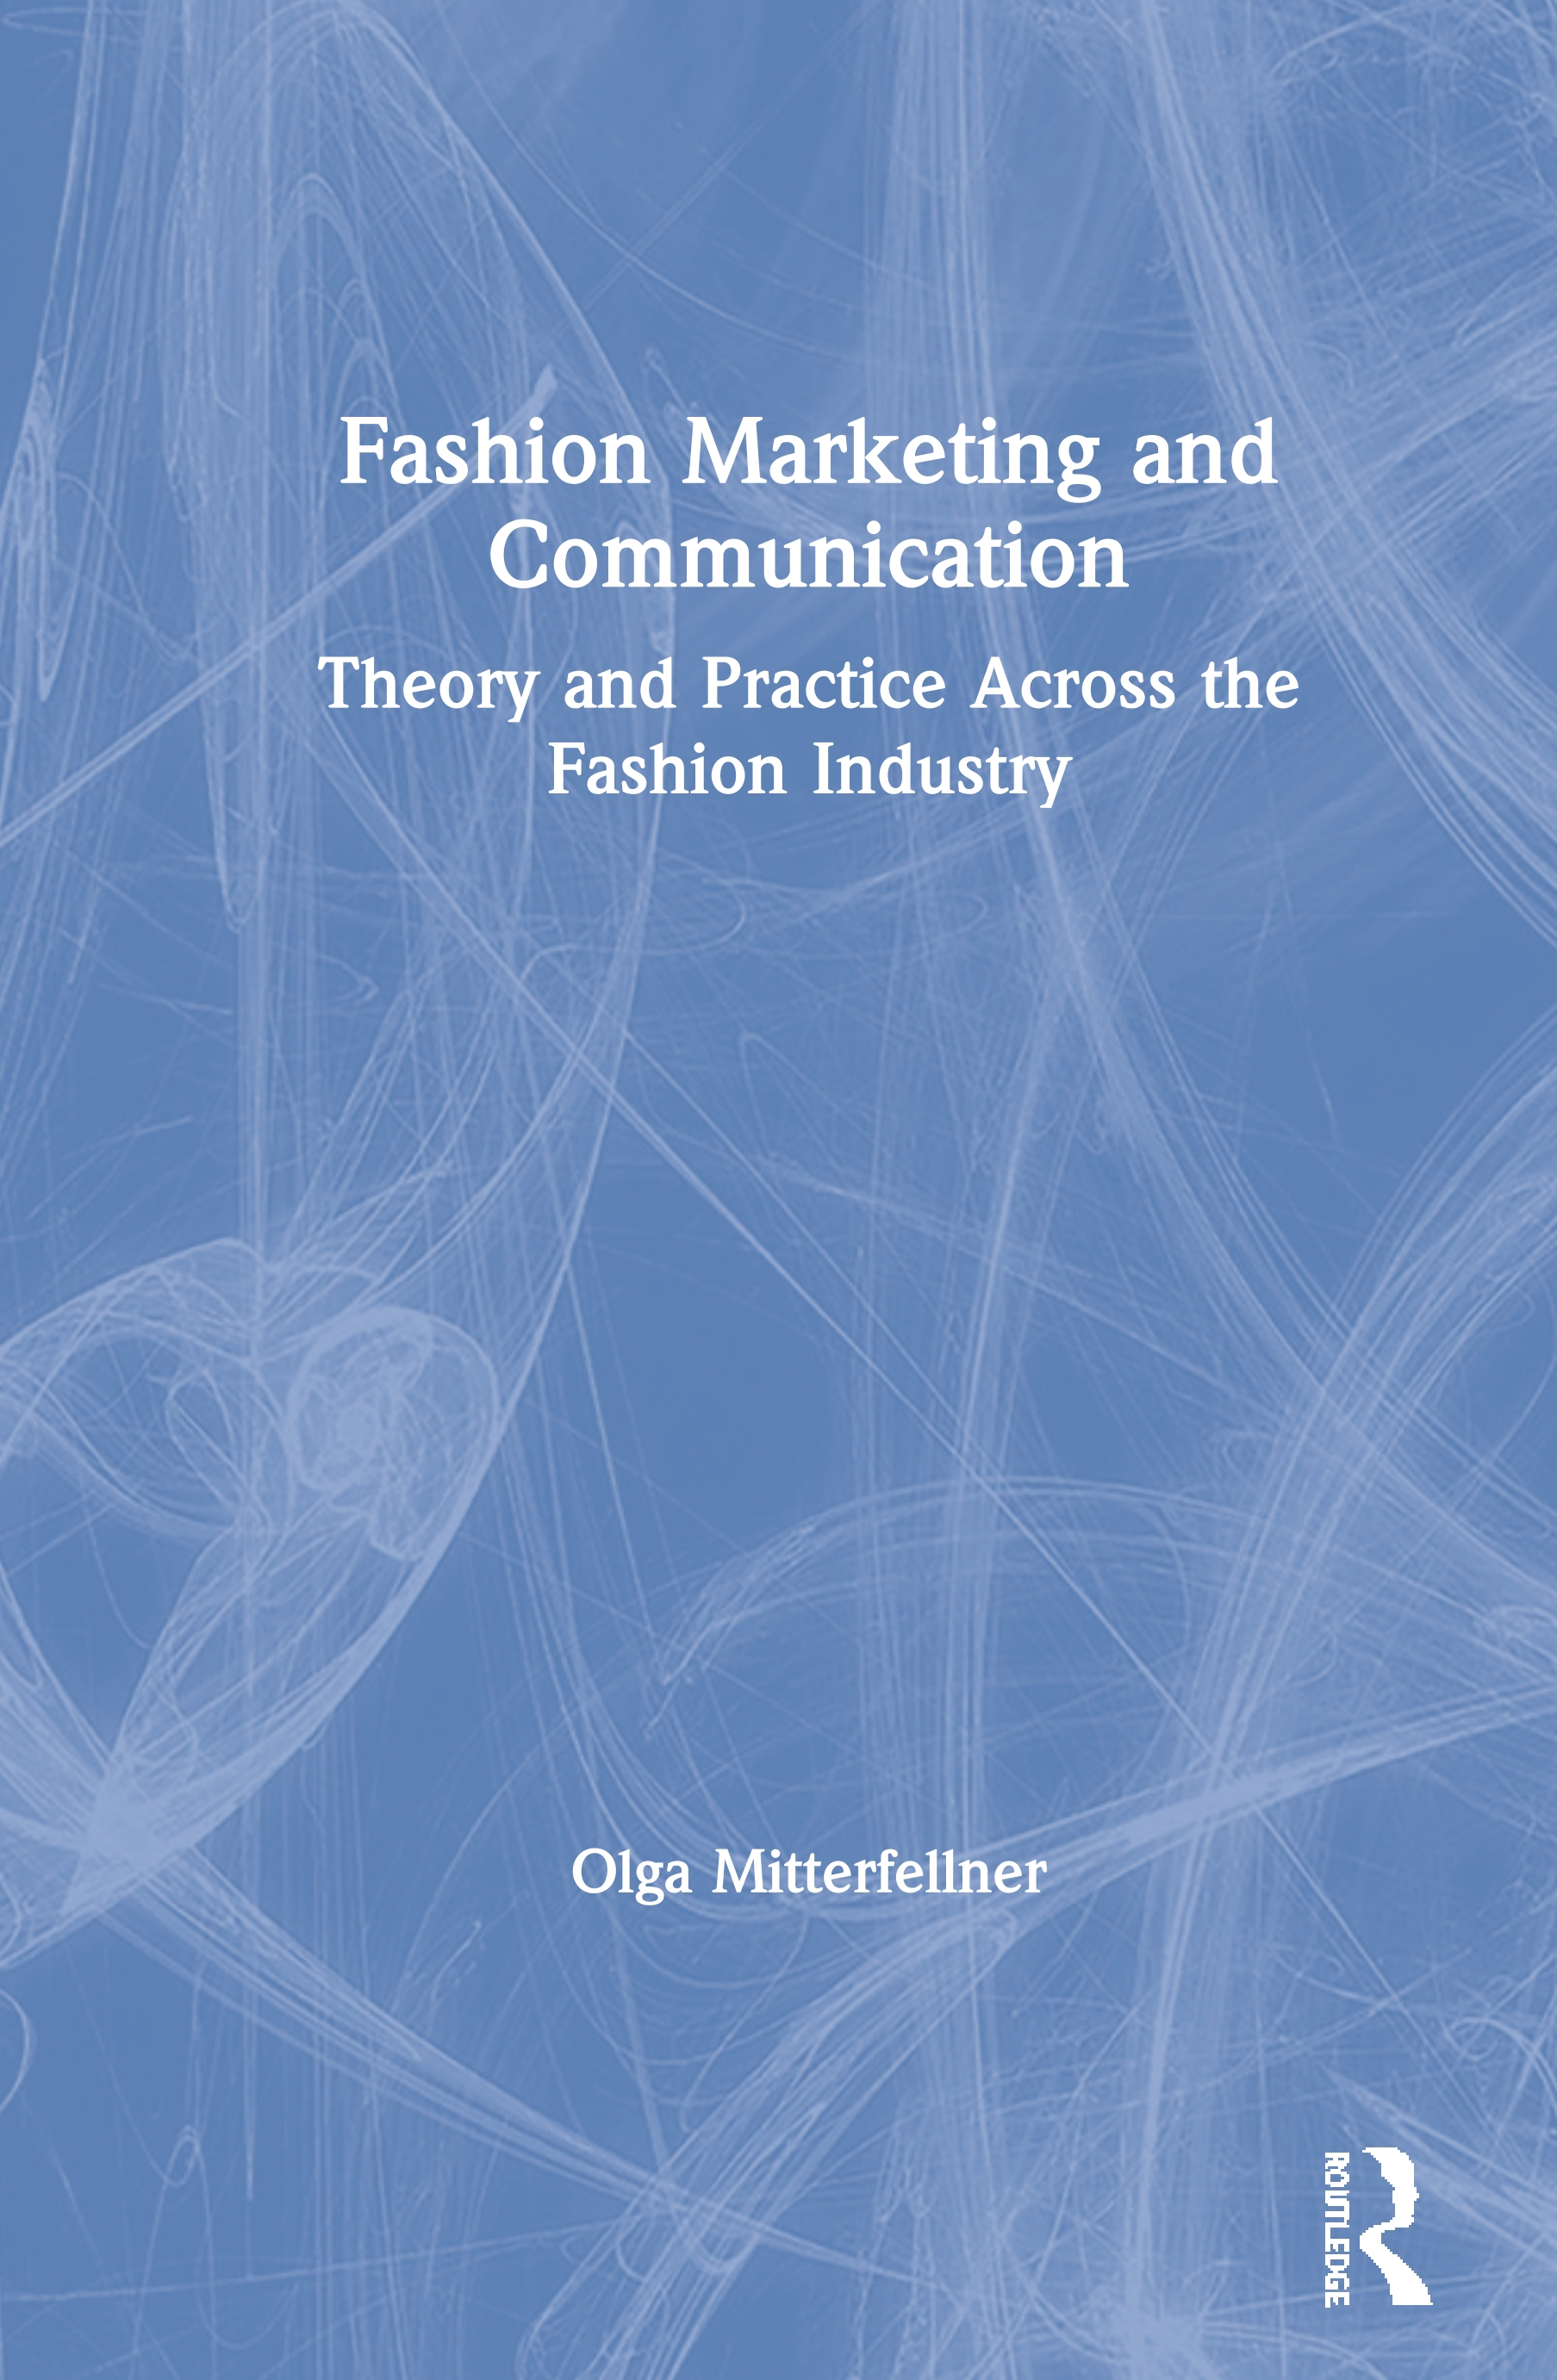 Fashion Marketing and Communication: Theory and Practice Across the Fashion Industry book cover